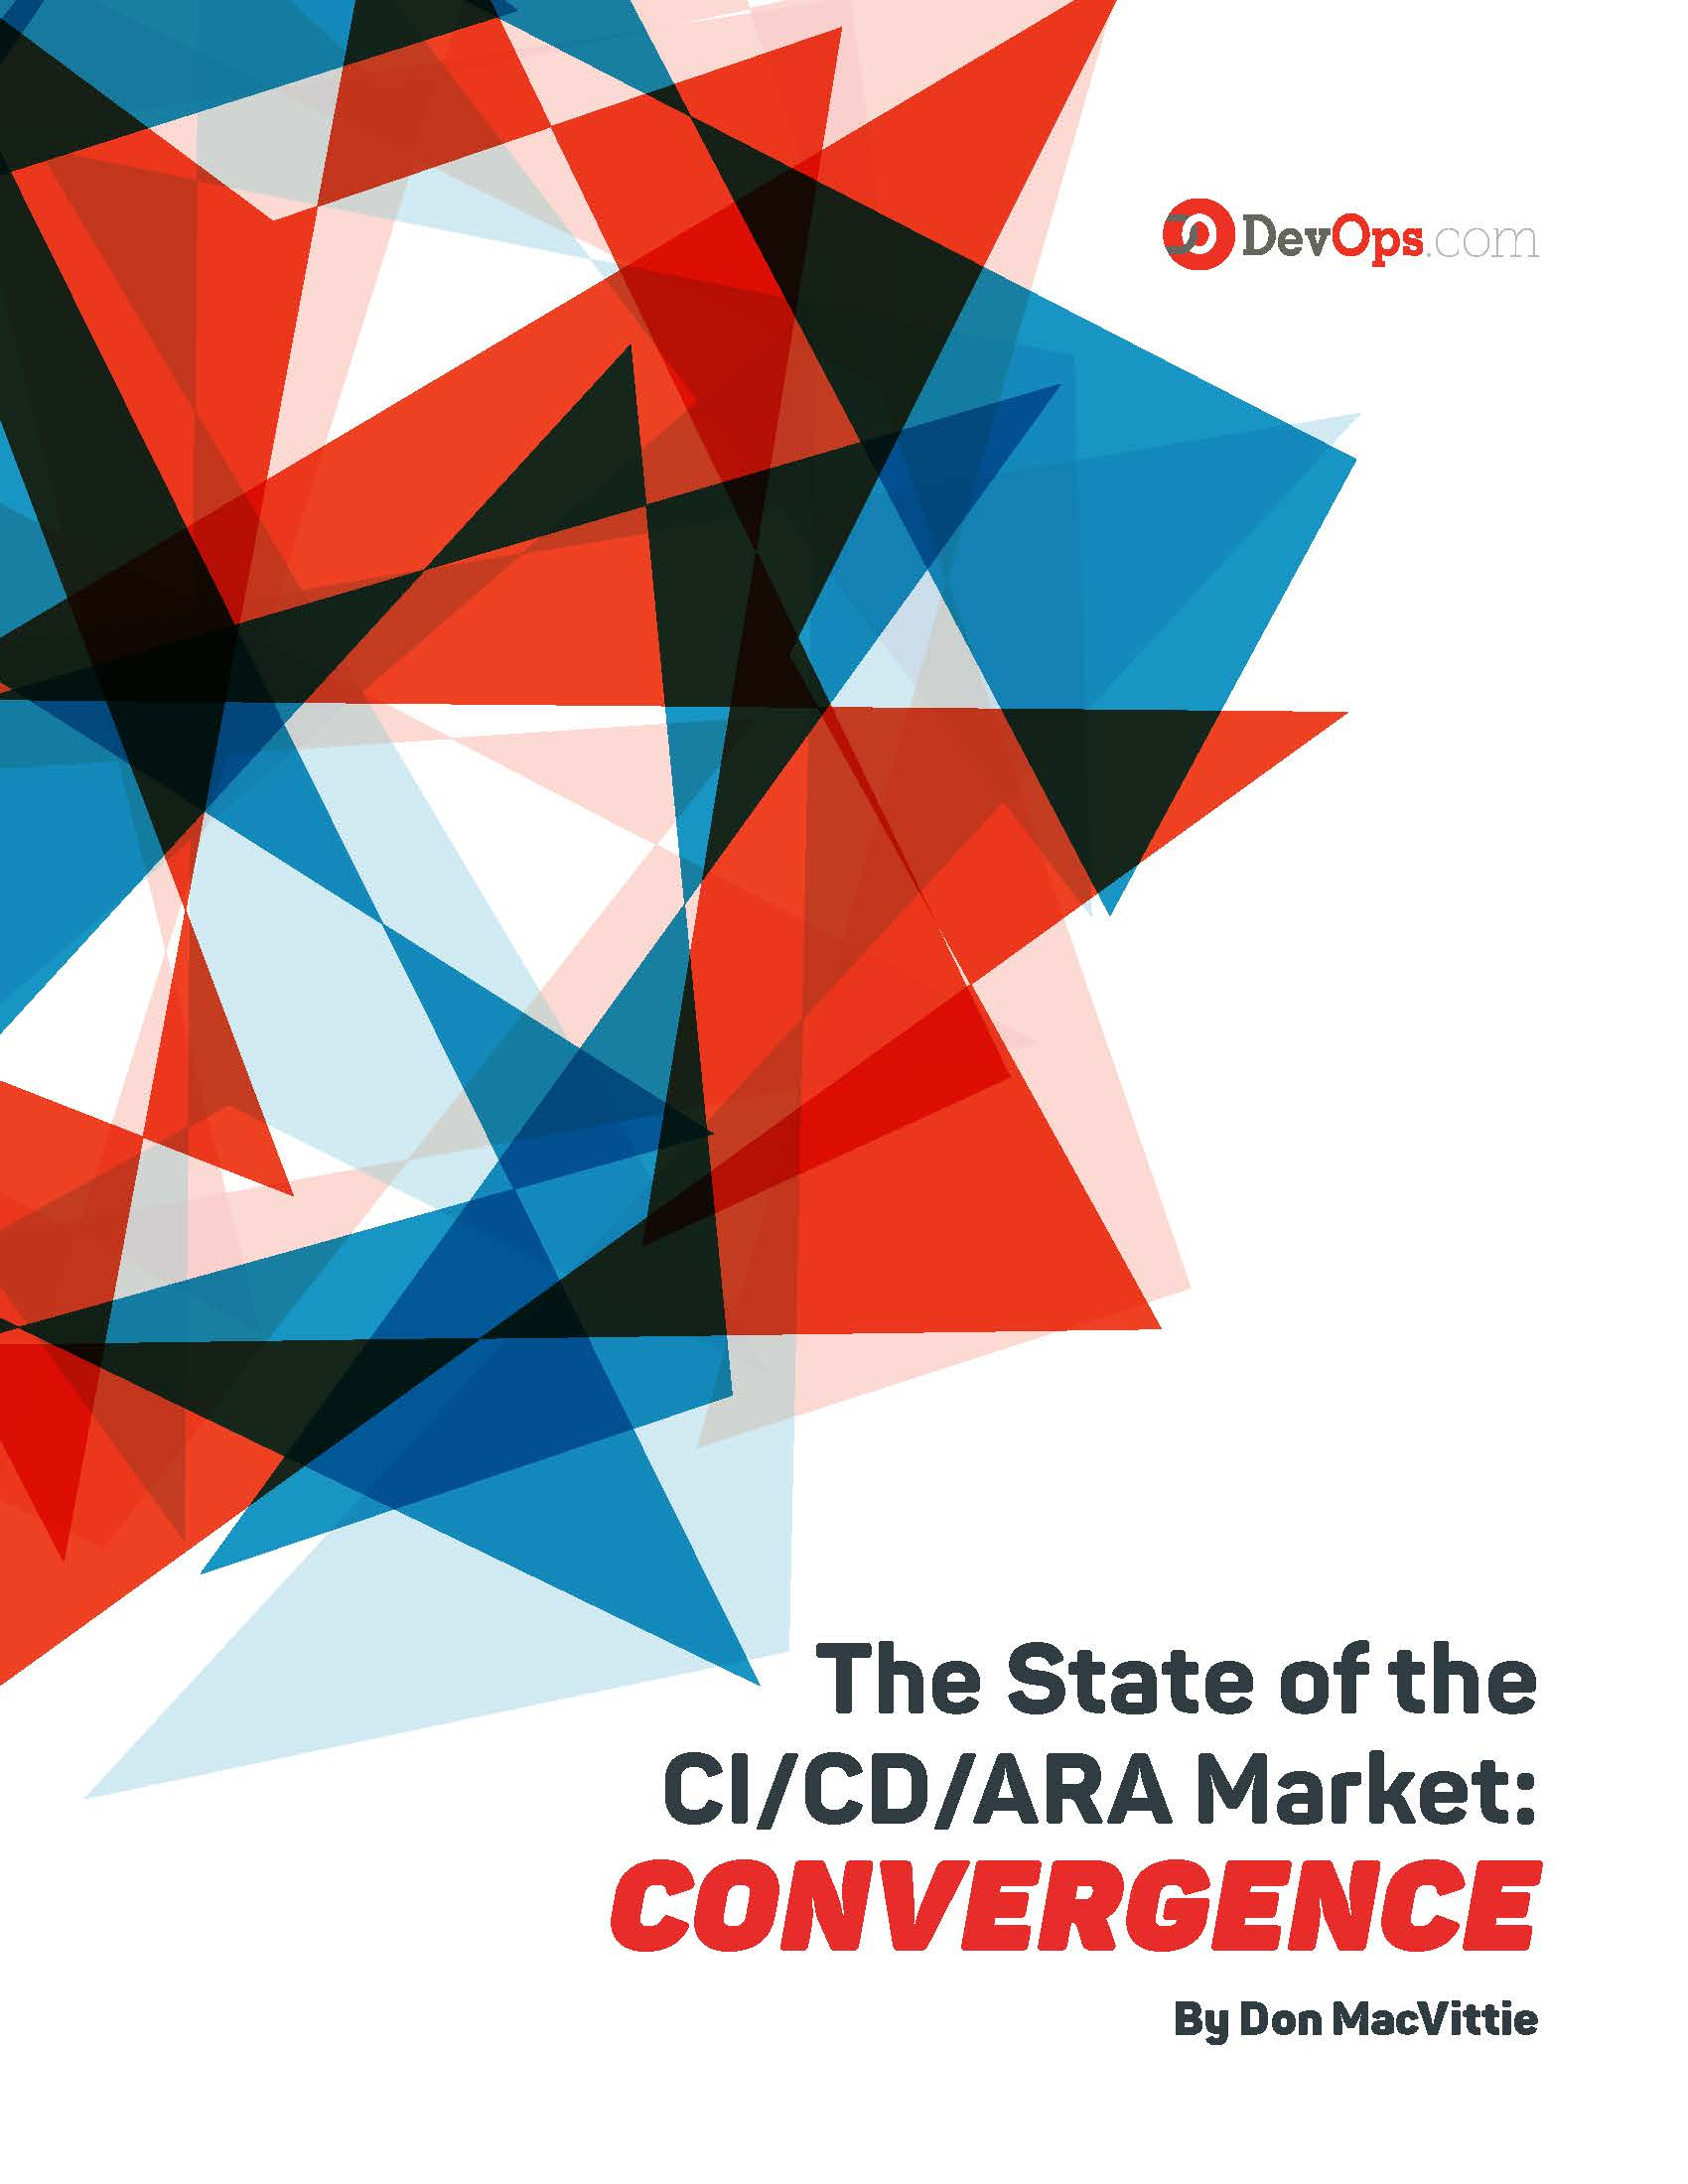 https://library.devops.com/the-state-of-the-ci/cd/ara-market